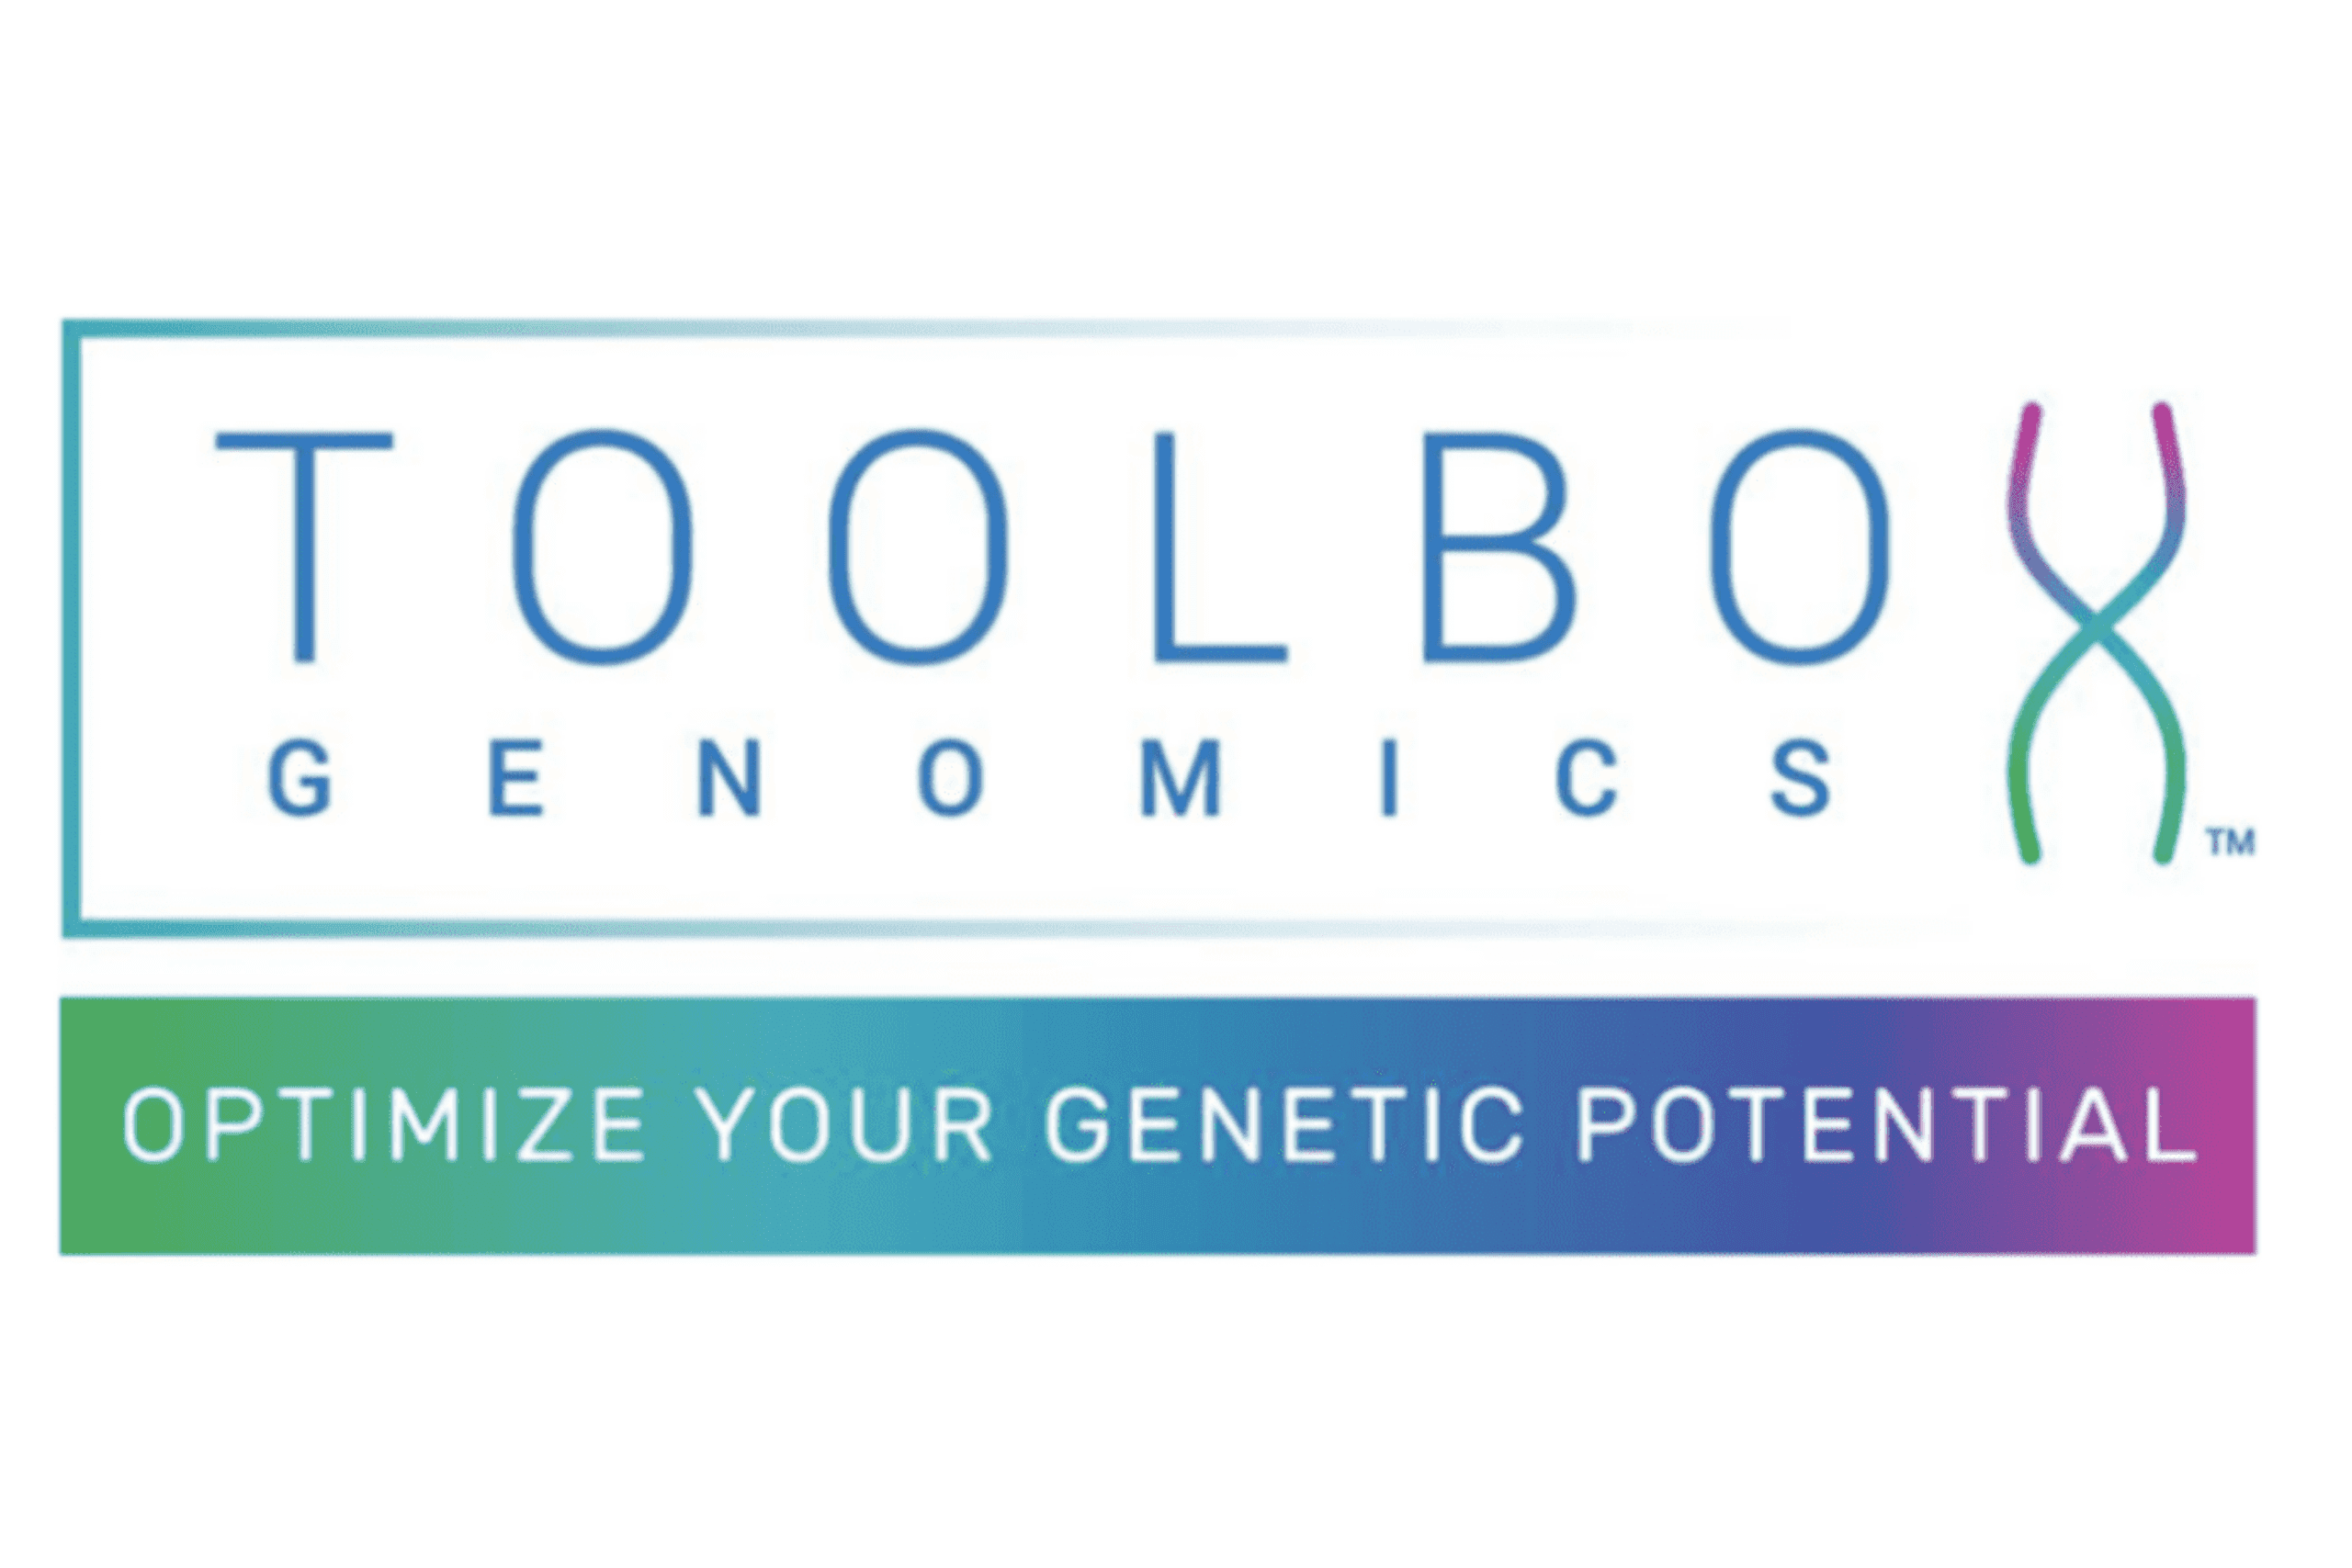 Toolbox Genomics